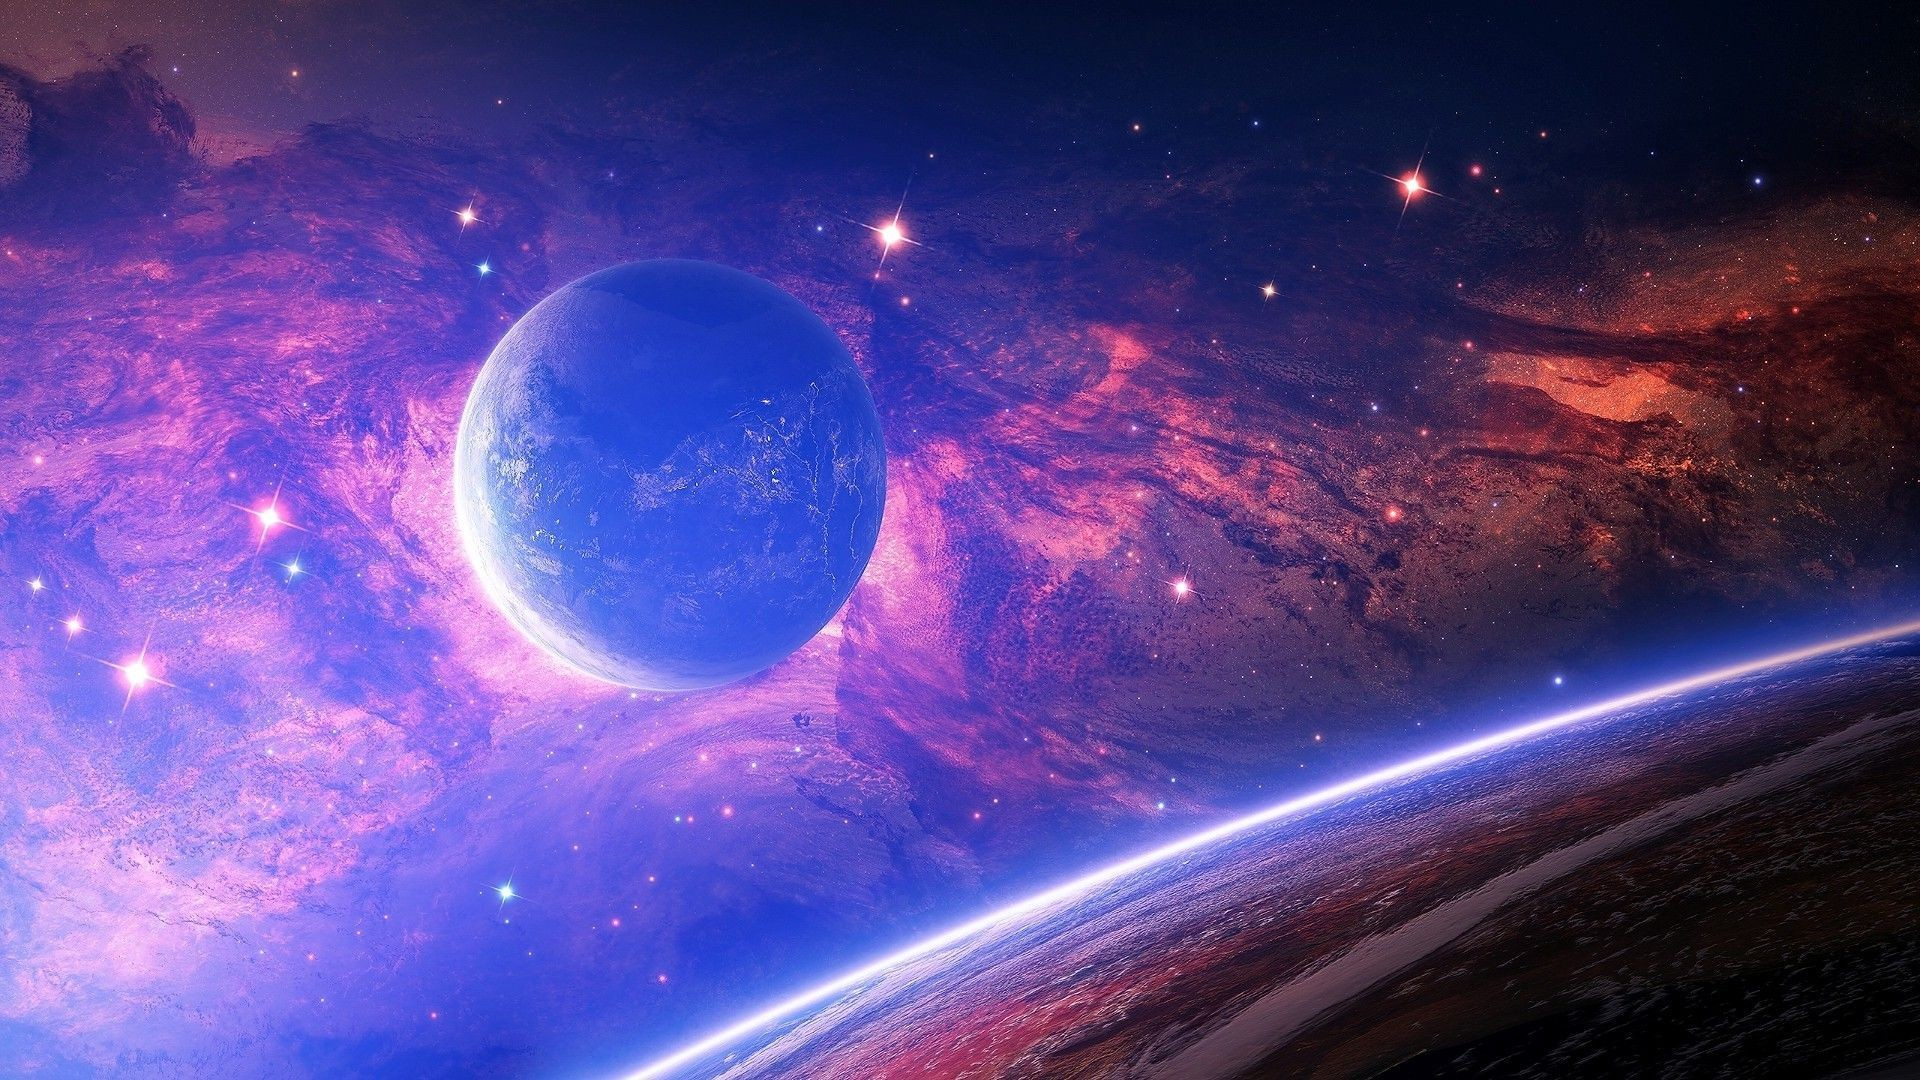 Hd purple space wallpaper 65 images - Space backgrounds 1920x1080 ...